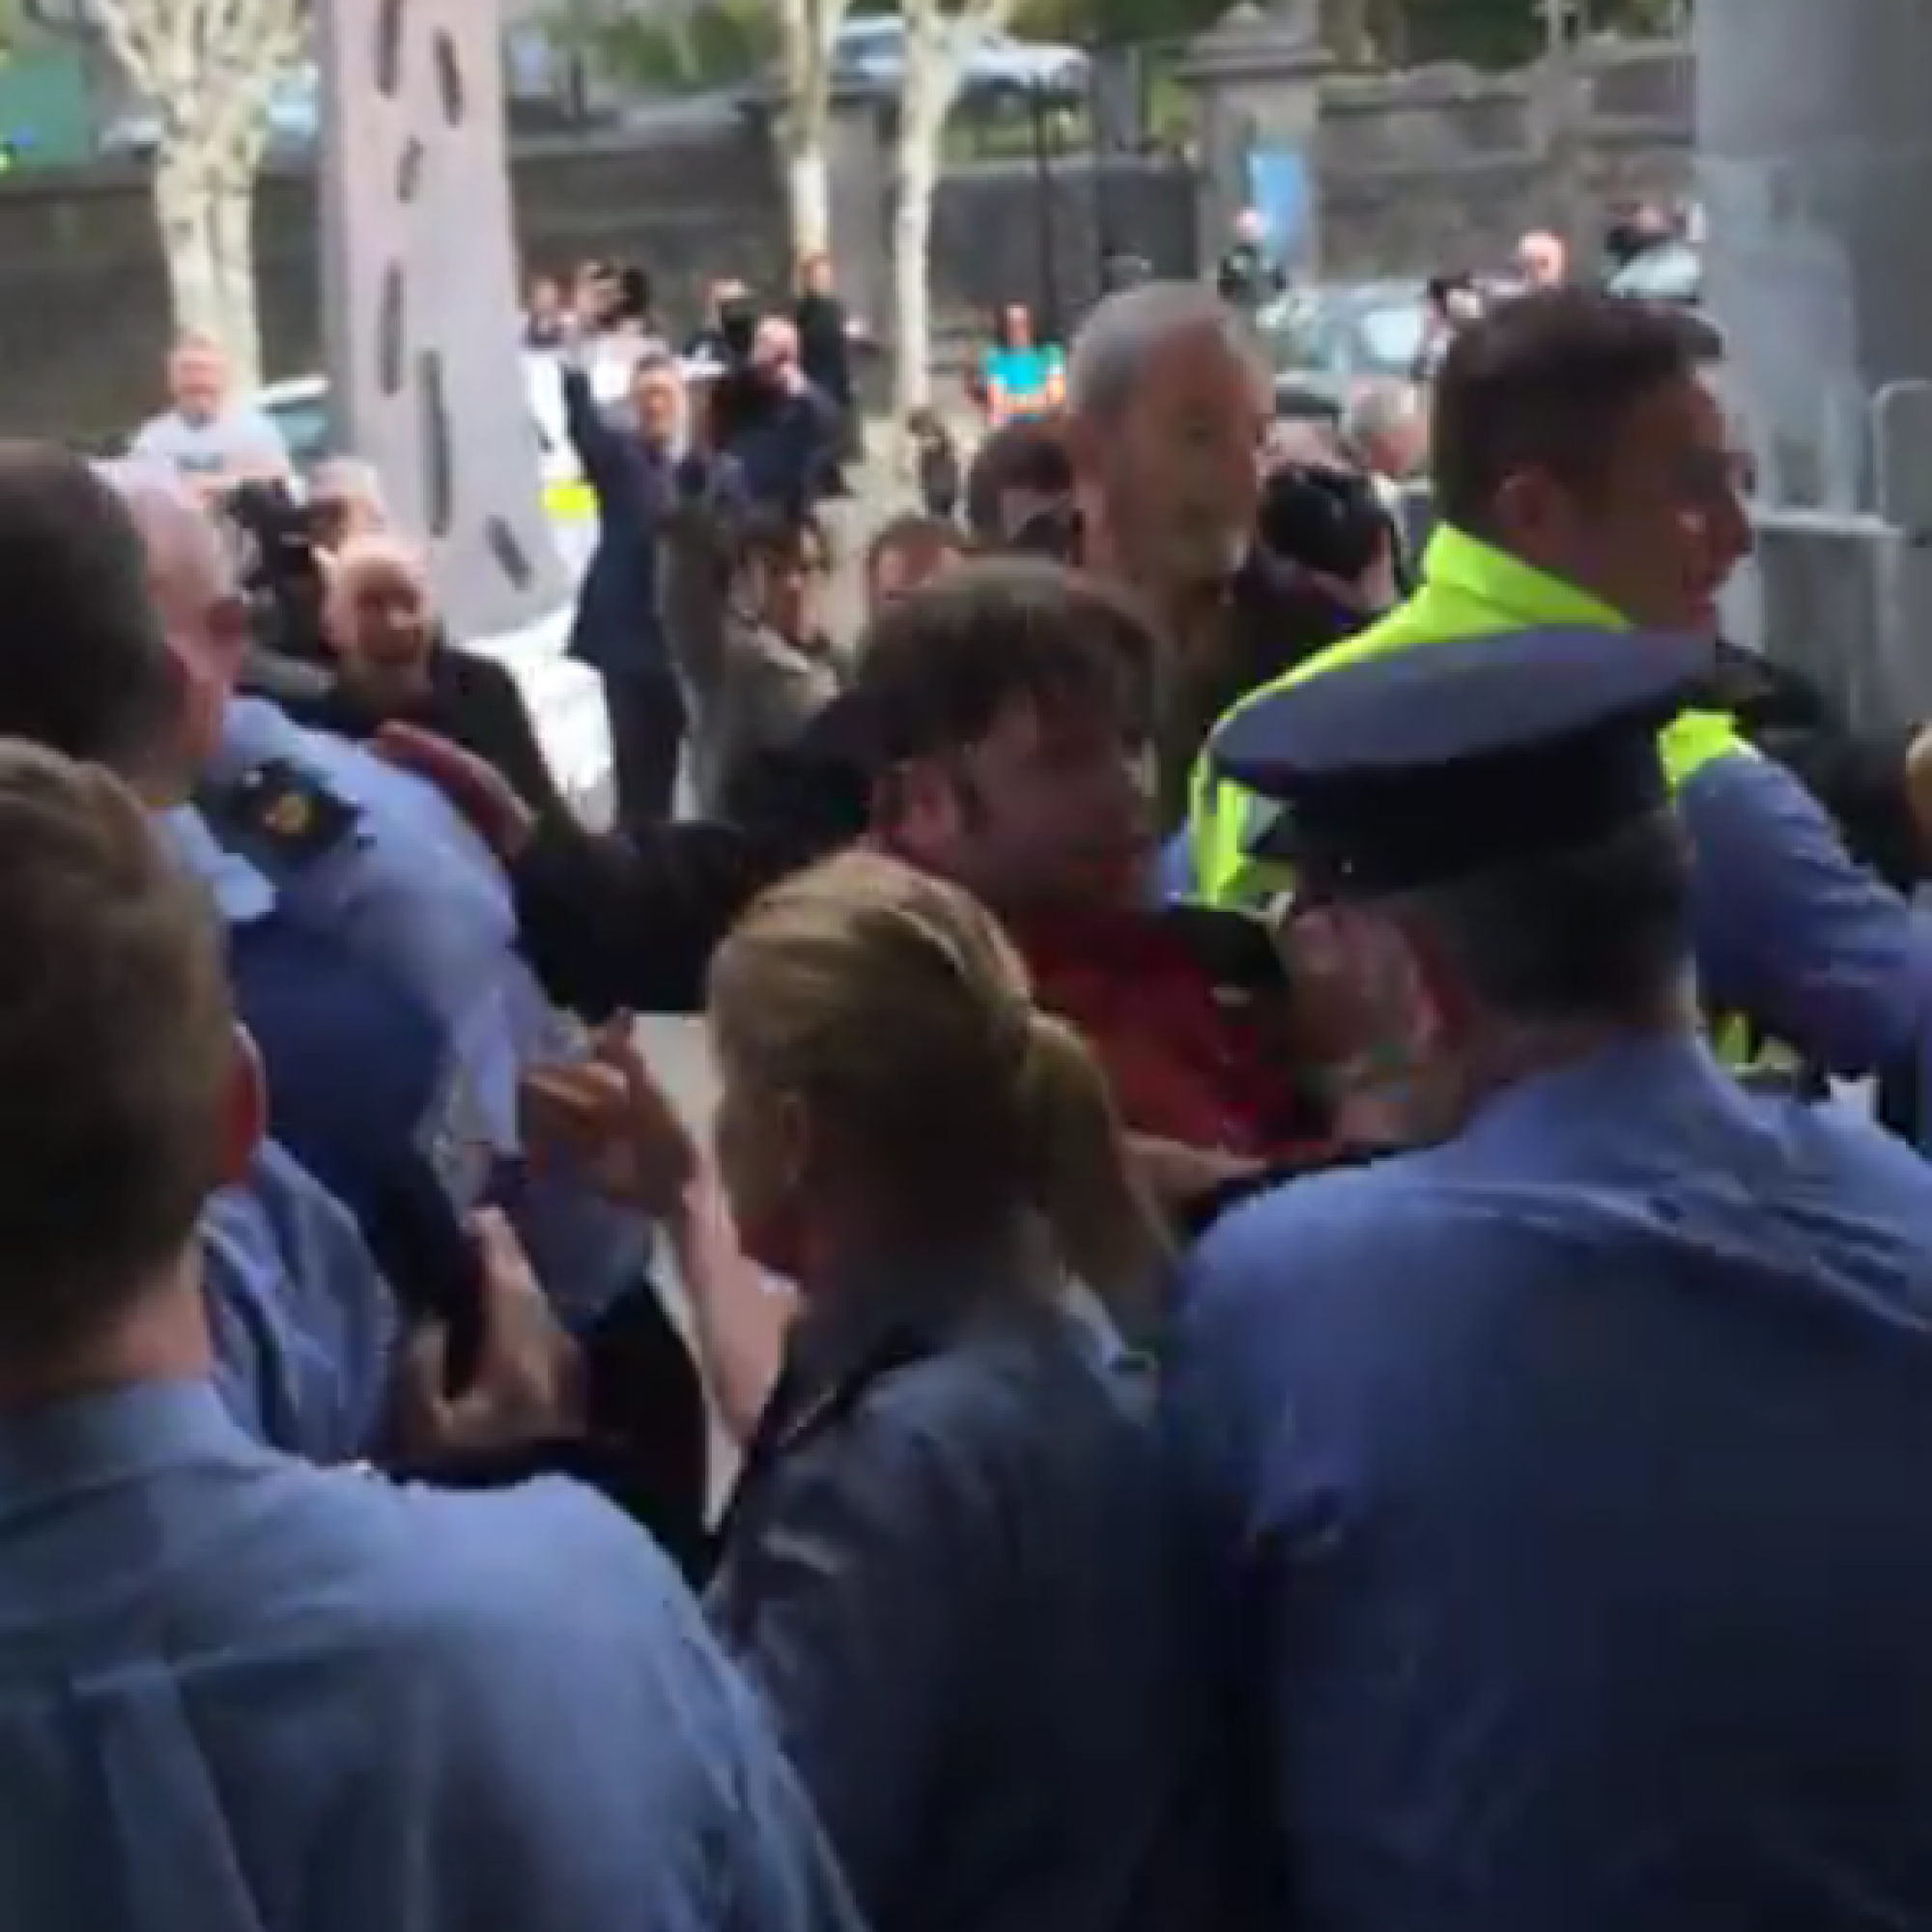 Armed gardaí called in as anti-eviction protesters take over Limerick court